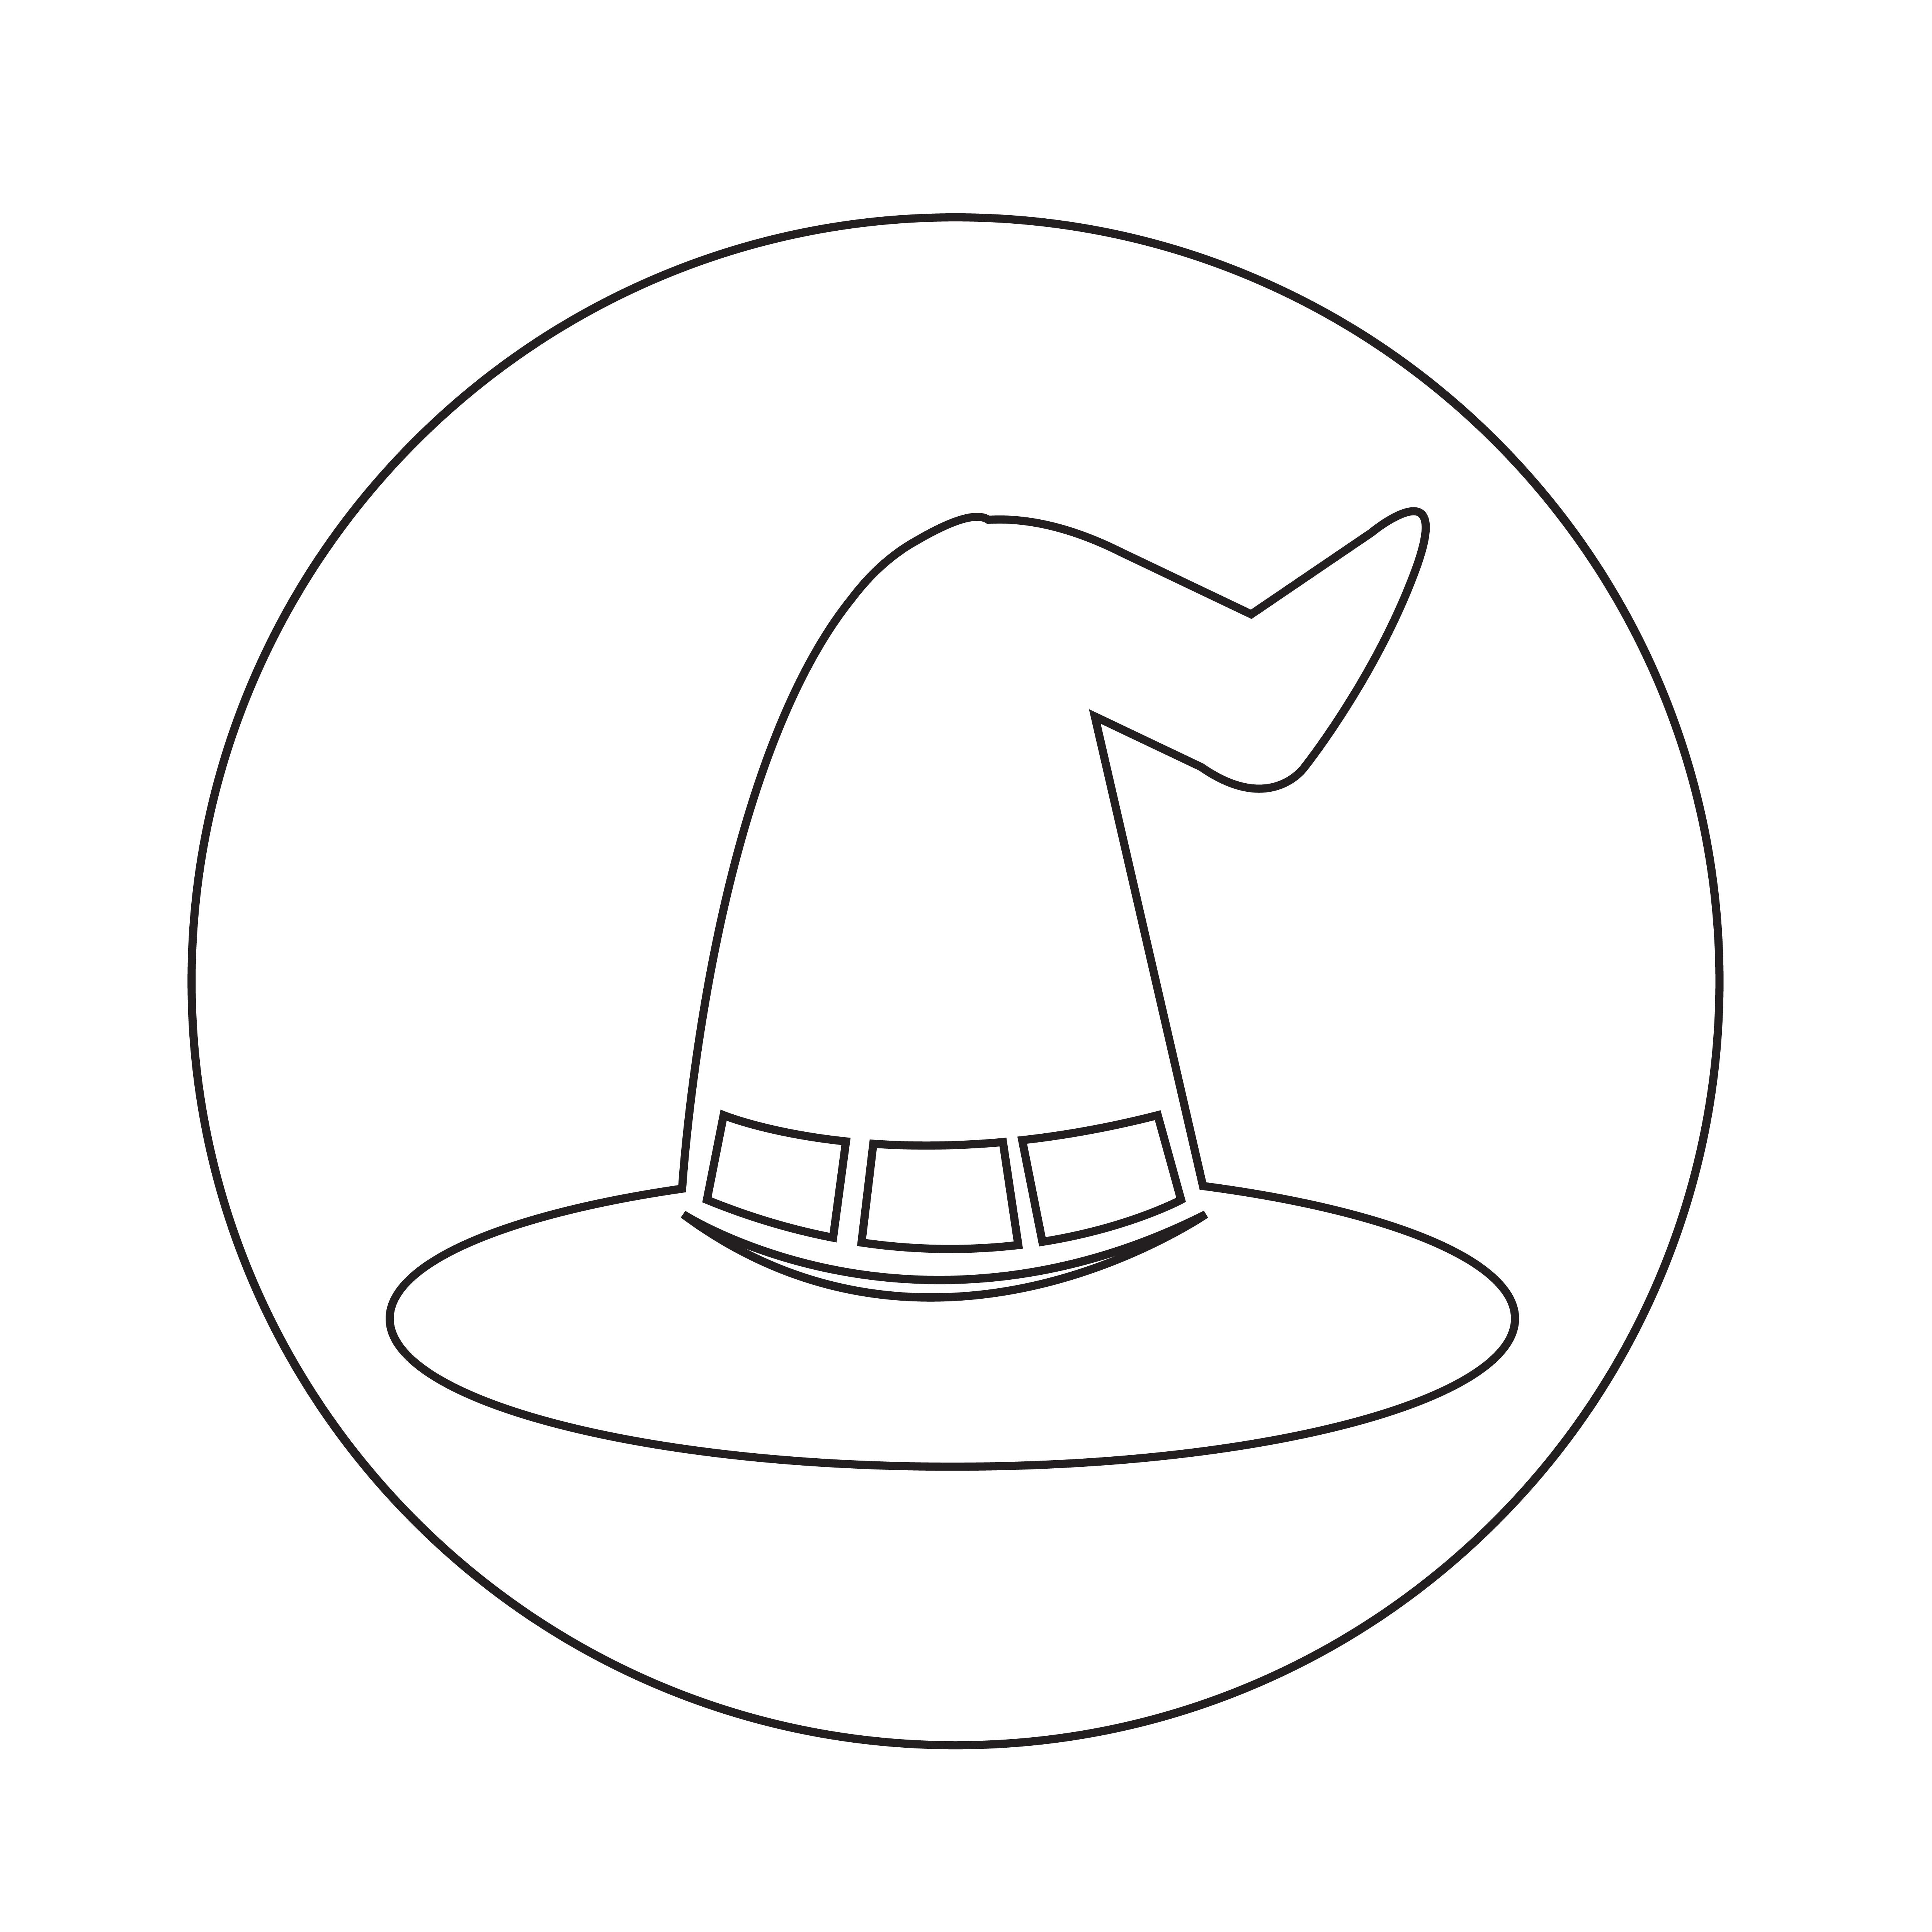 halloween witch hat icon - Download Free Vectors, Clipart ...